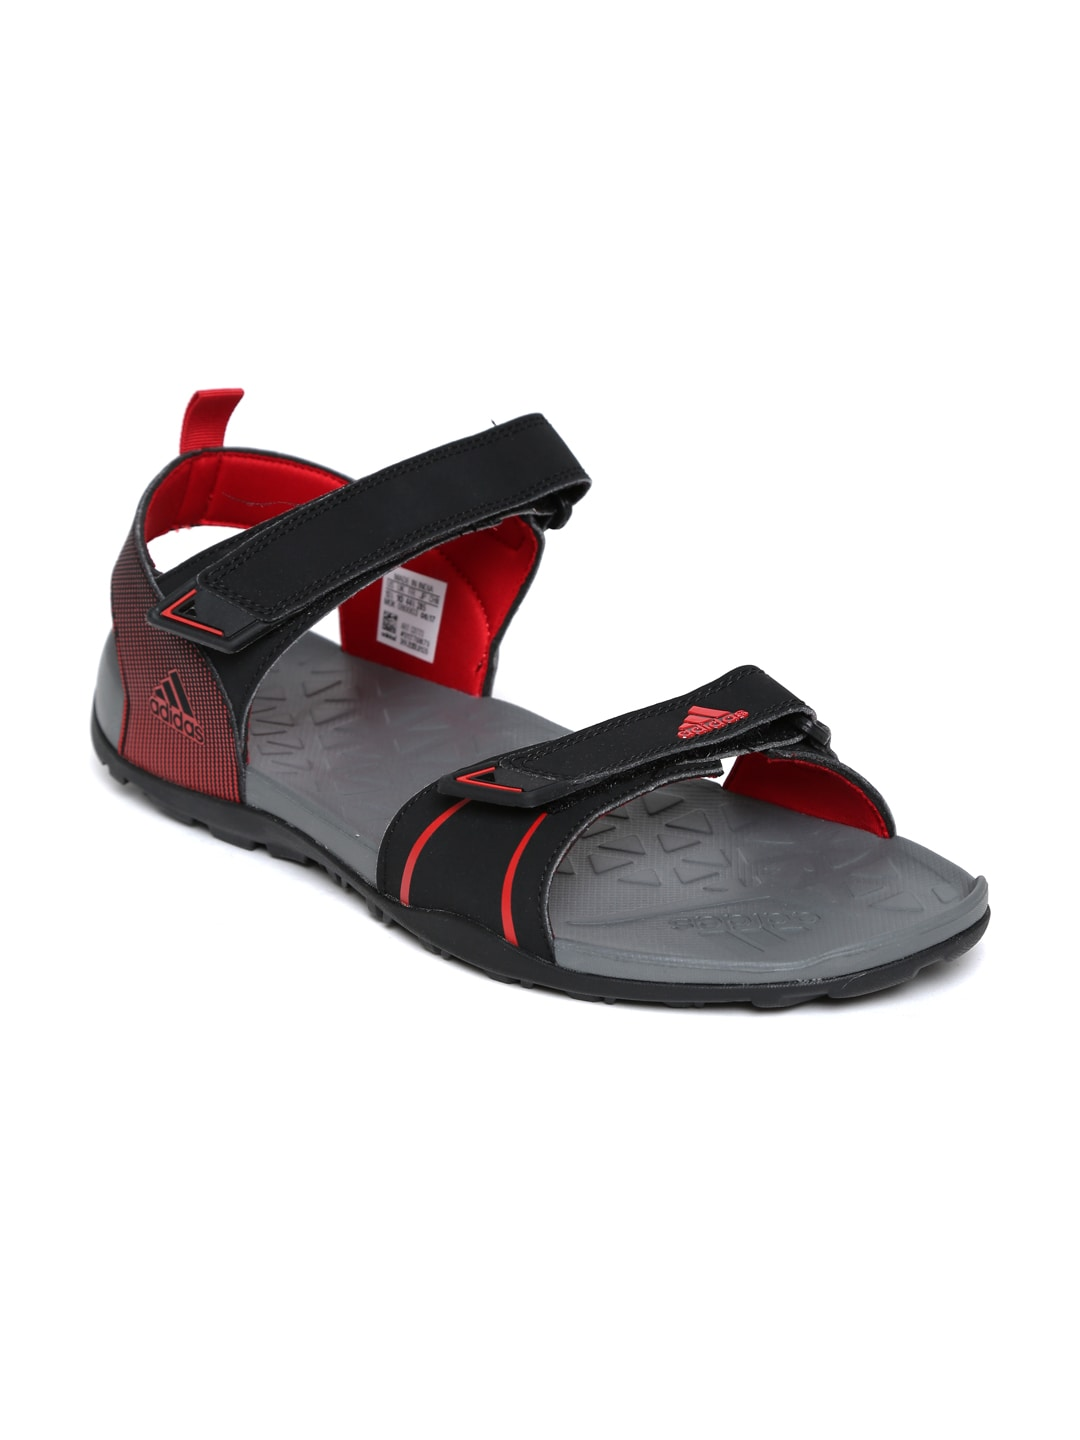 fd9e71675dab Sandal Men Adidas Footwear Sandals - Buy Sandal Men Adidas Footwear Sandals  online in India